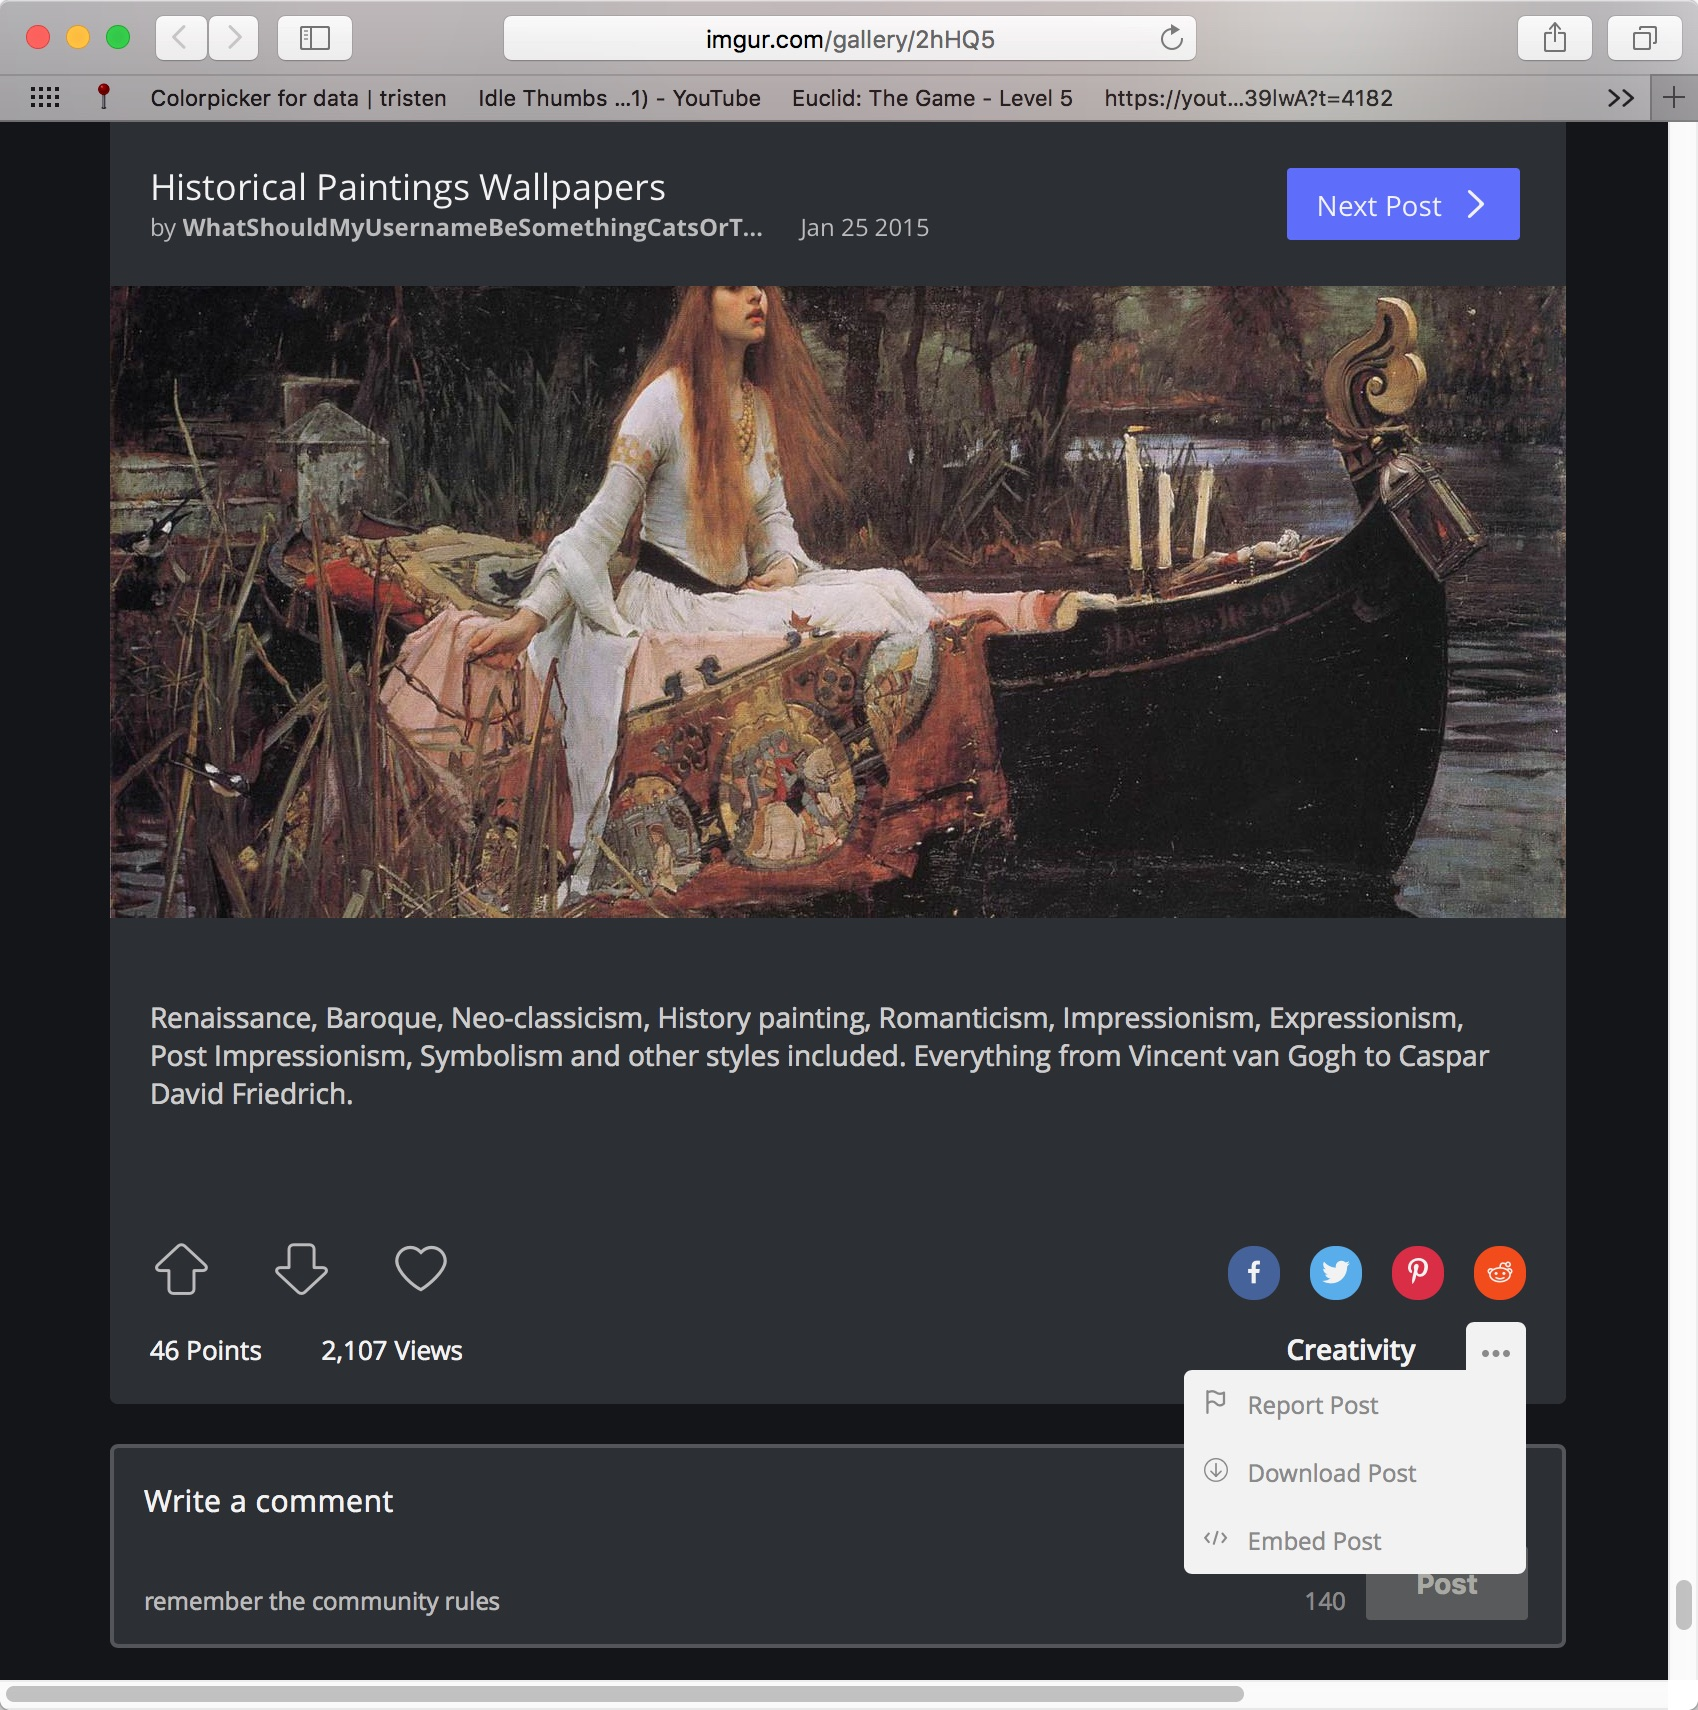 if youre interested in scouring some of the less savory parts of the web there are russian torrent sites featuring comprehensive collections of art from